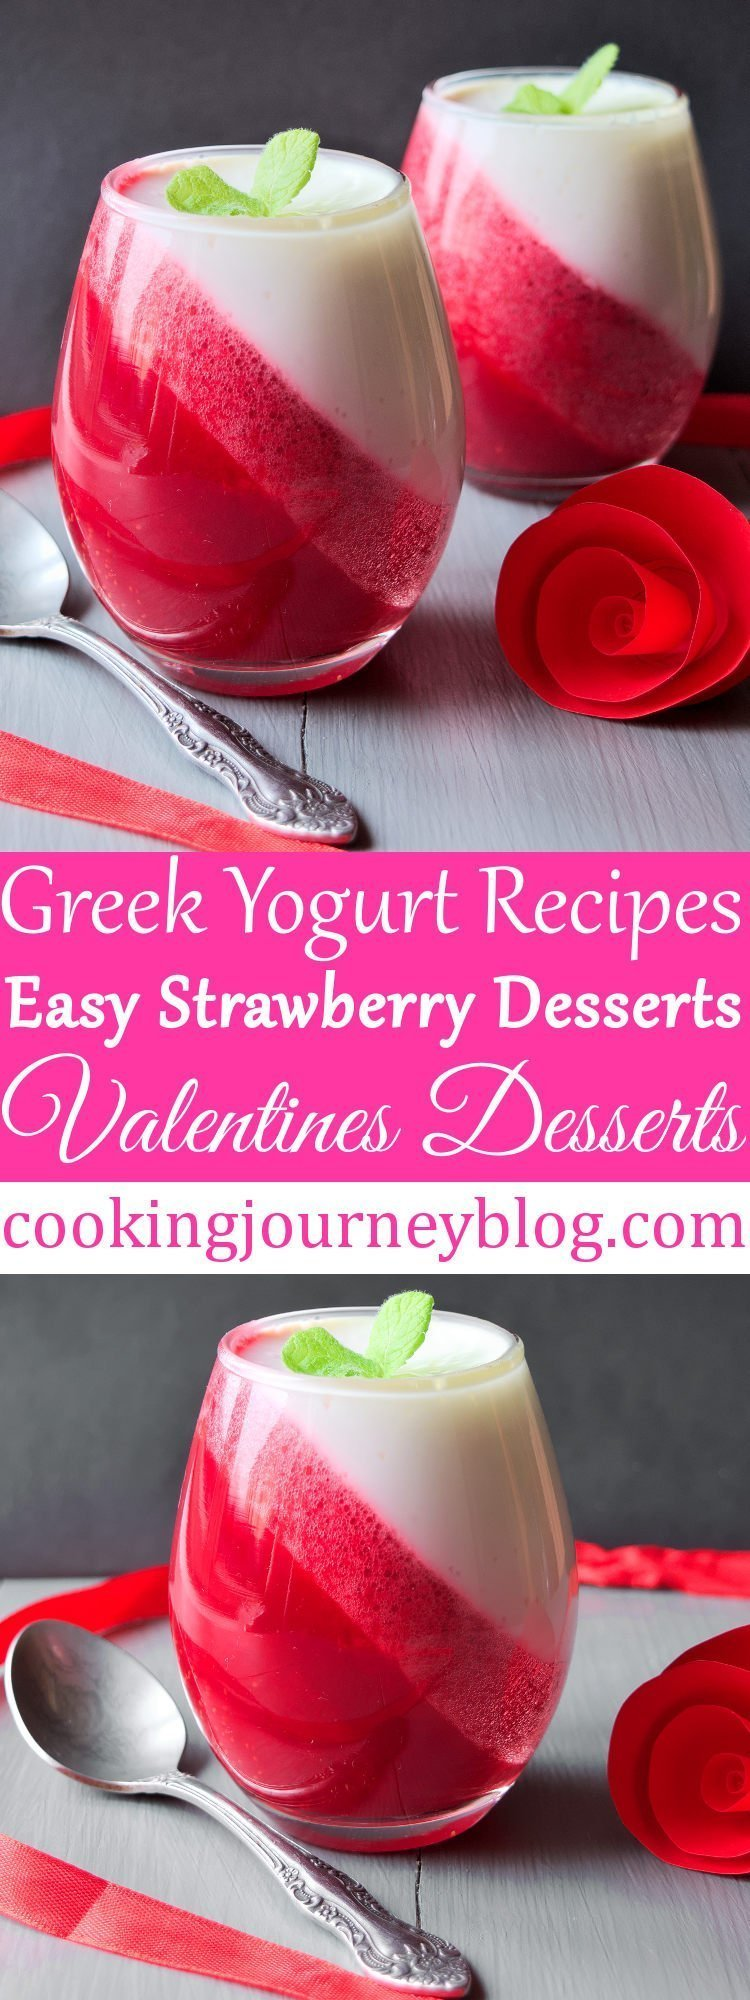 Easy strawberry desserts with magic, perfect valentine treats! I bet this is a cold dessert that you will want to make again. This dessert for two is one of healthy strawberry recipes to make for Valentines day or any other occasion or even for breakfast! Cooking Journey Blog